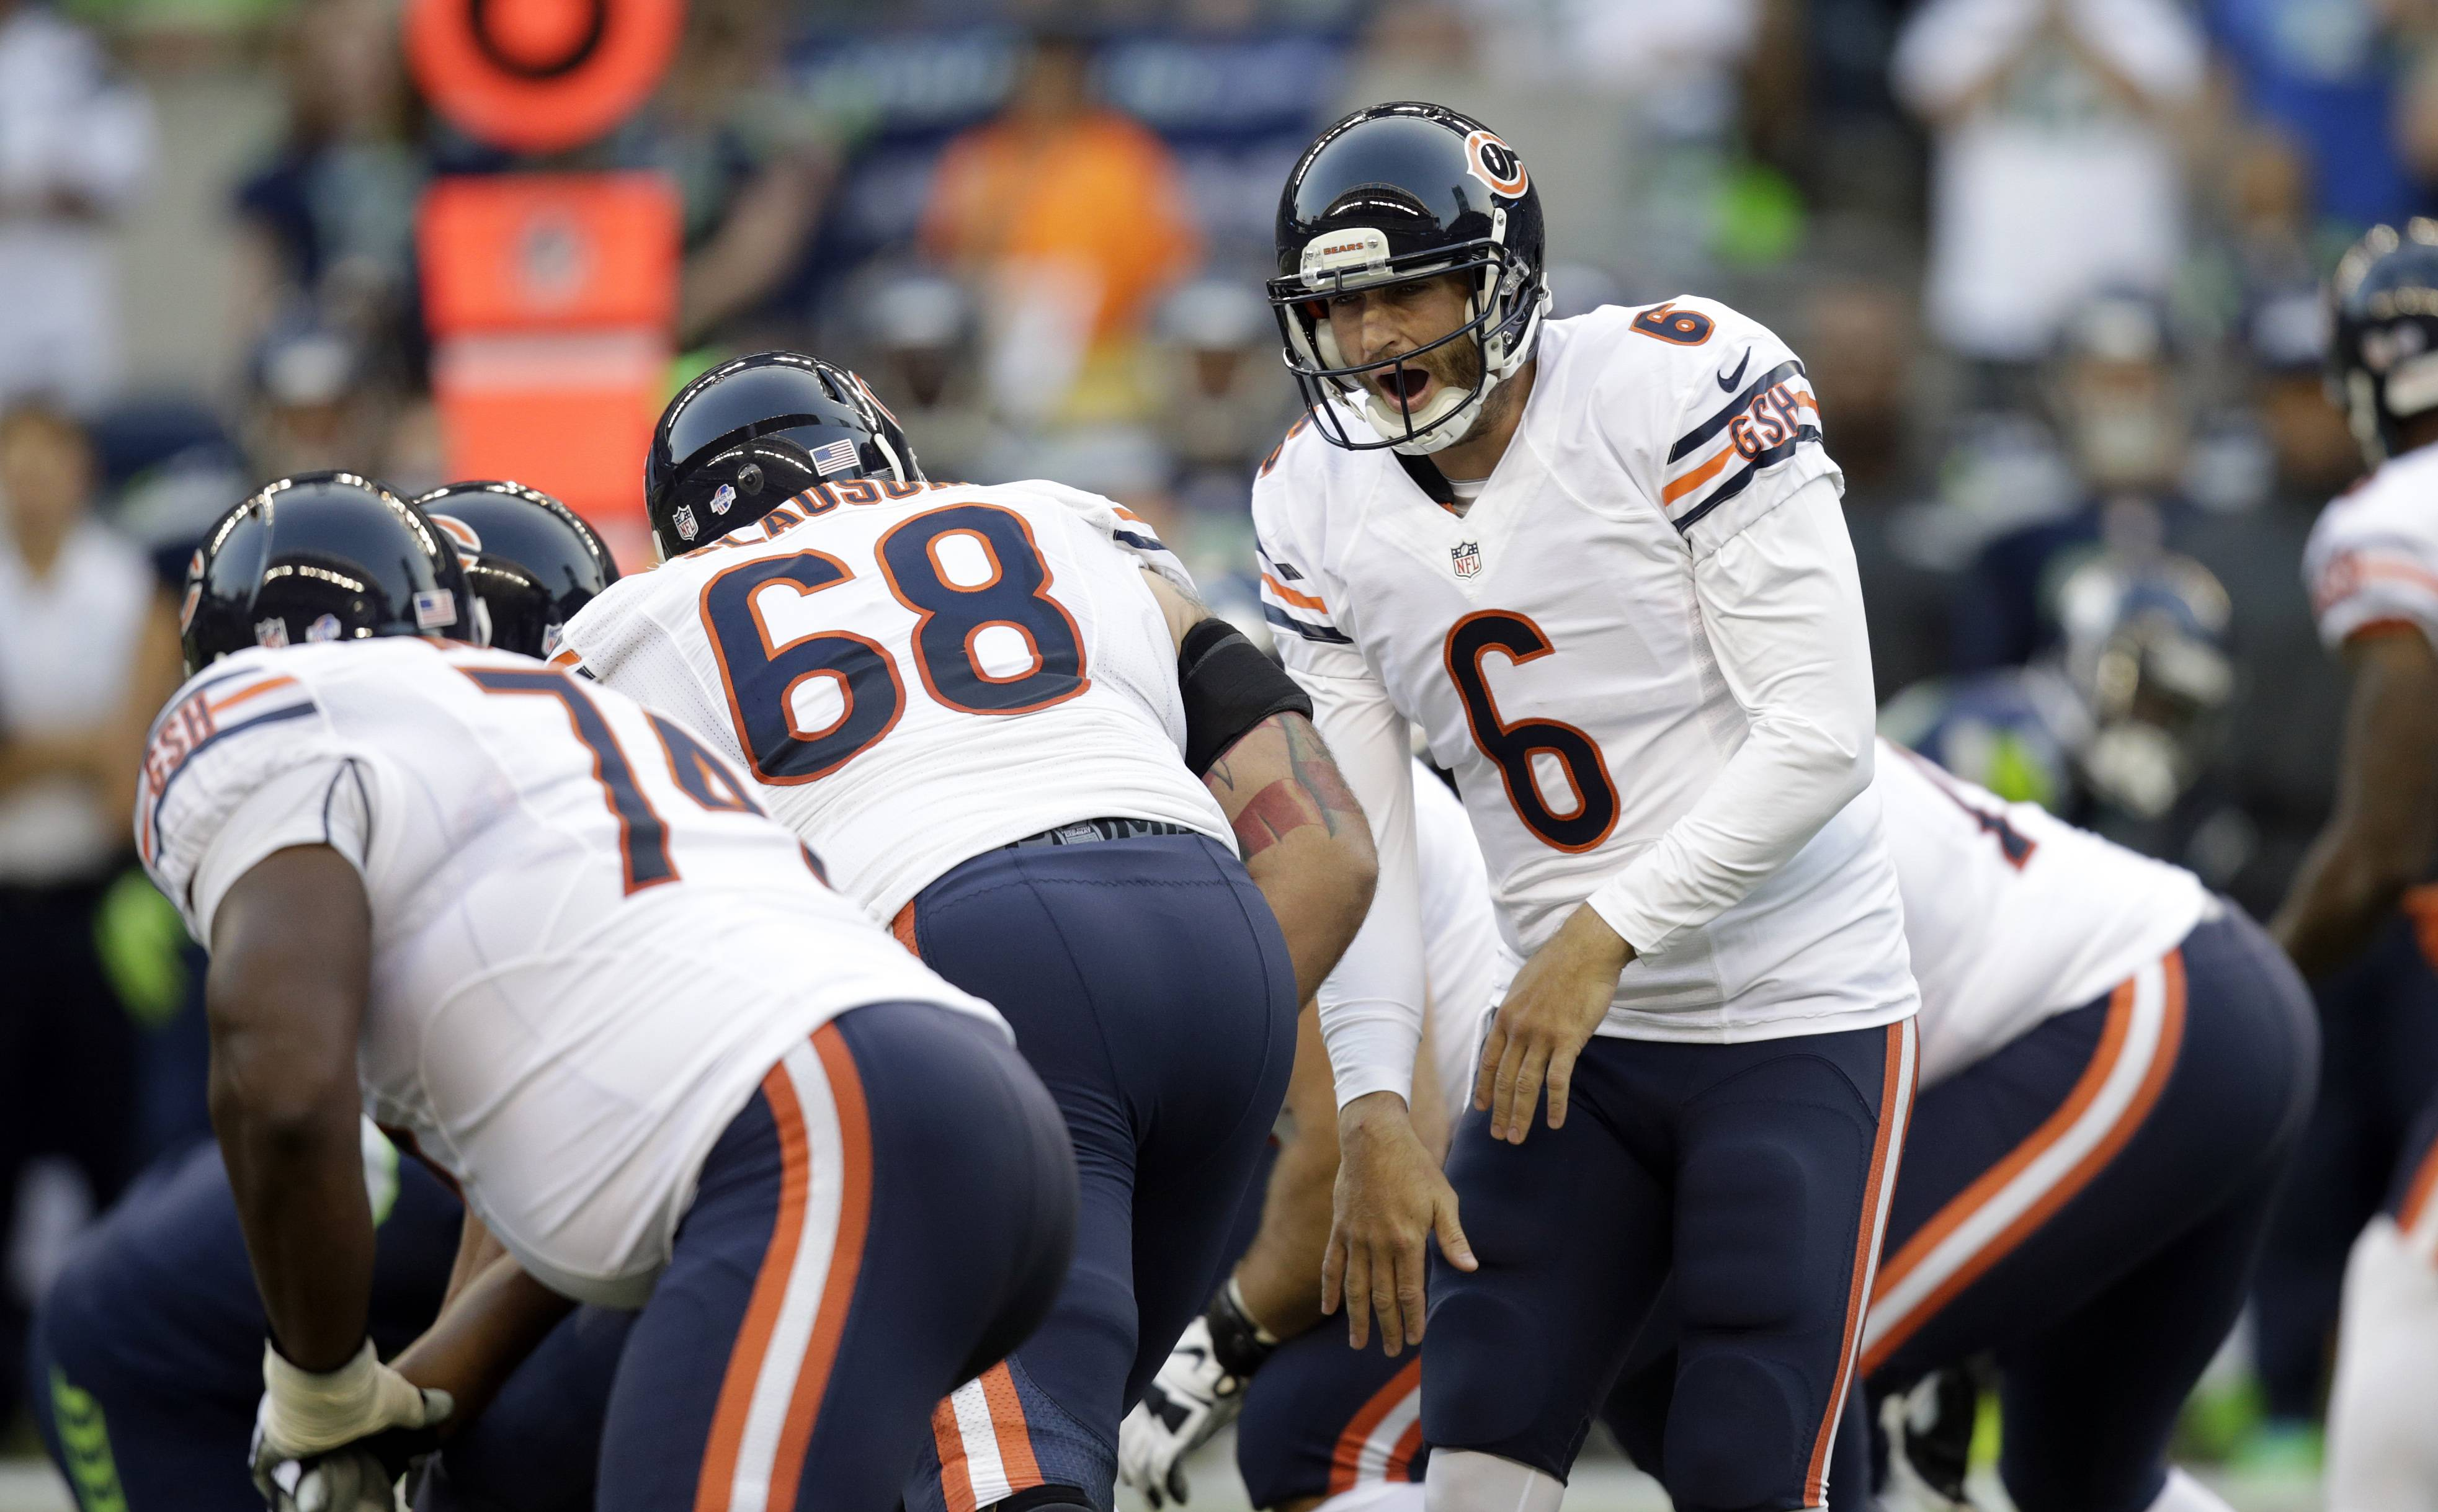 Bears quarterback Jay Cutler yells to teammates at the line of scrimmage. Since 2011, the billion-dollar fantasy market has been infused with dozens of daily and weekly games. Those games allow players to win huge prizes quickly, sometimes in one week, sometimes in just one night. With players betting thousands or even tens of thousands a night, legal experts believe it's time to review the section of the 2006 federal law that was written specifically to protect fantasy sports from being banned the way online poker was.